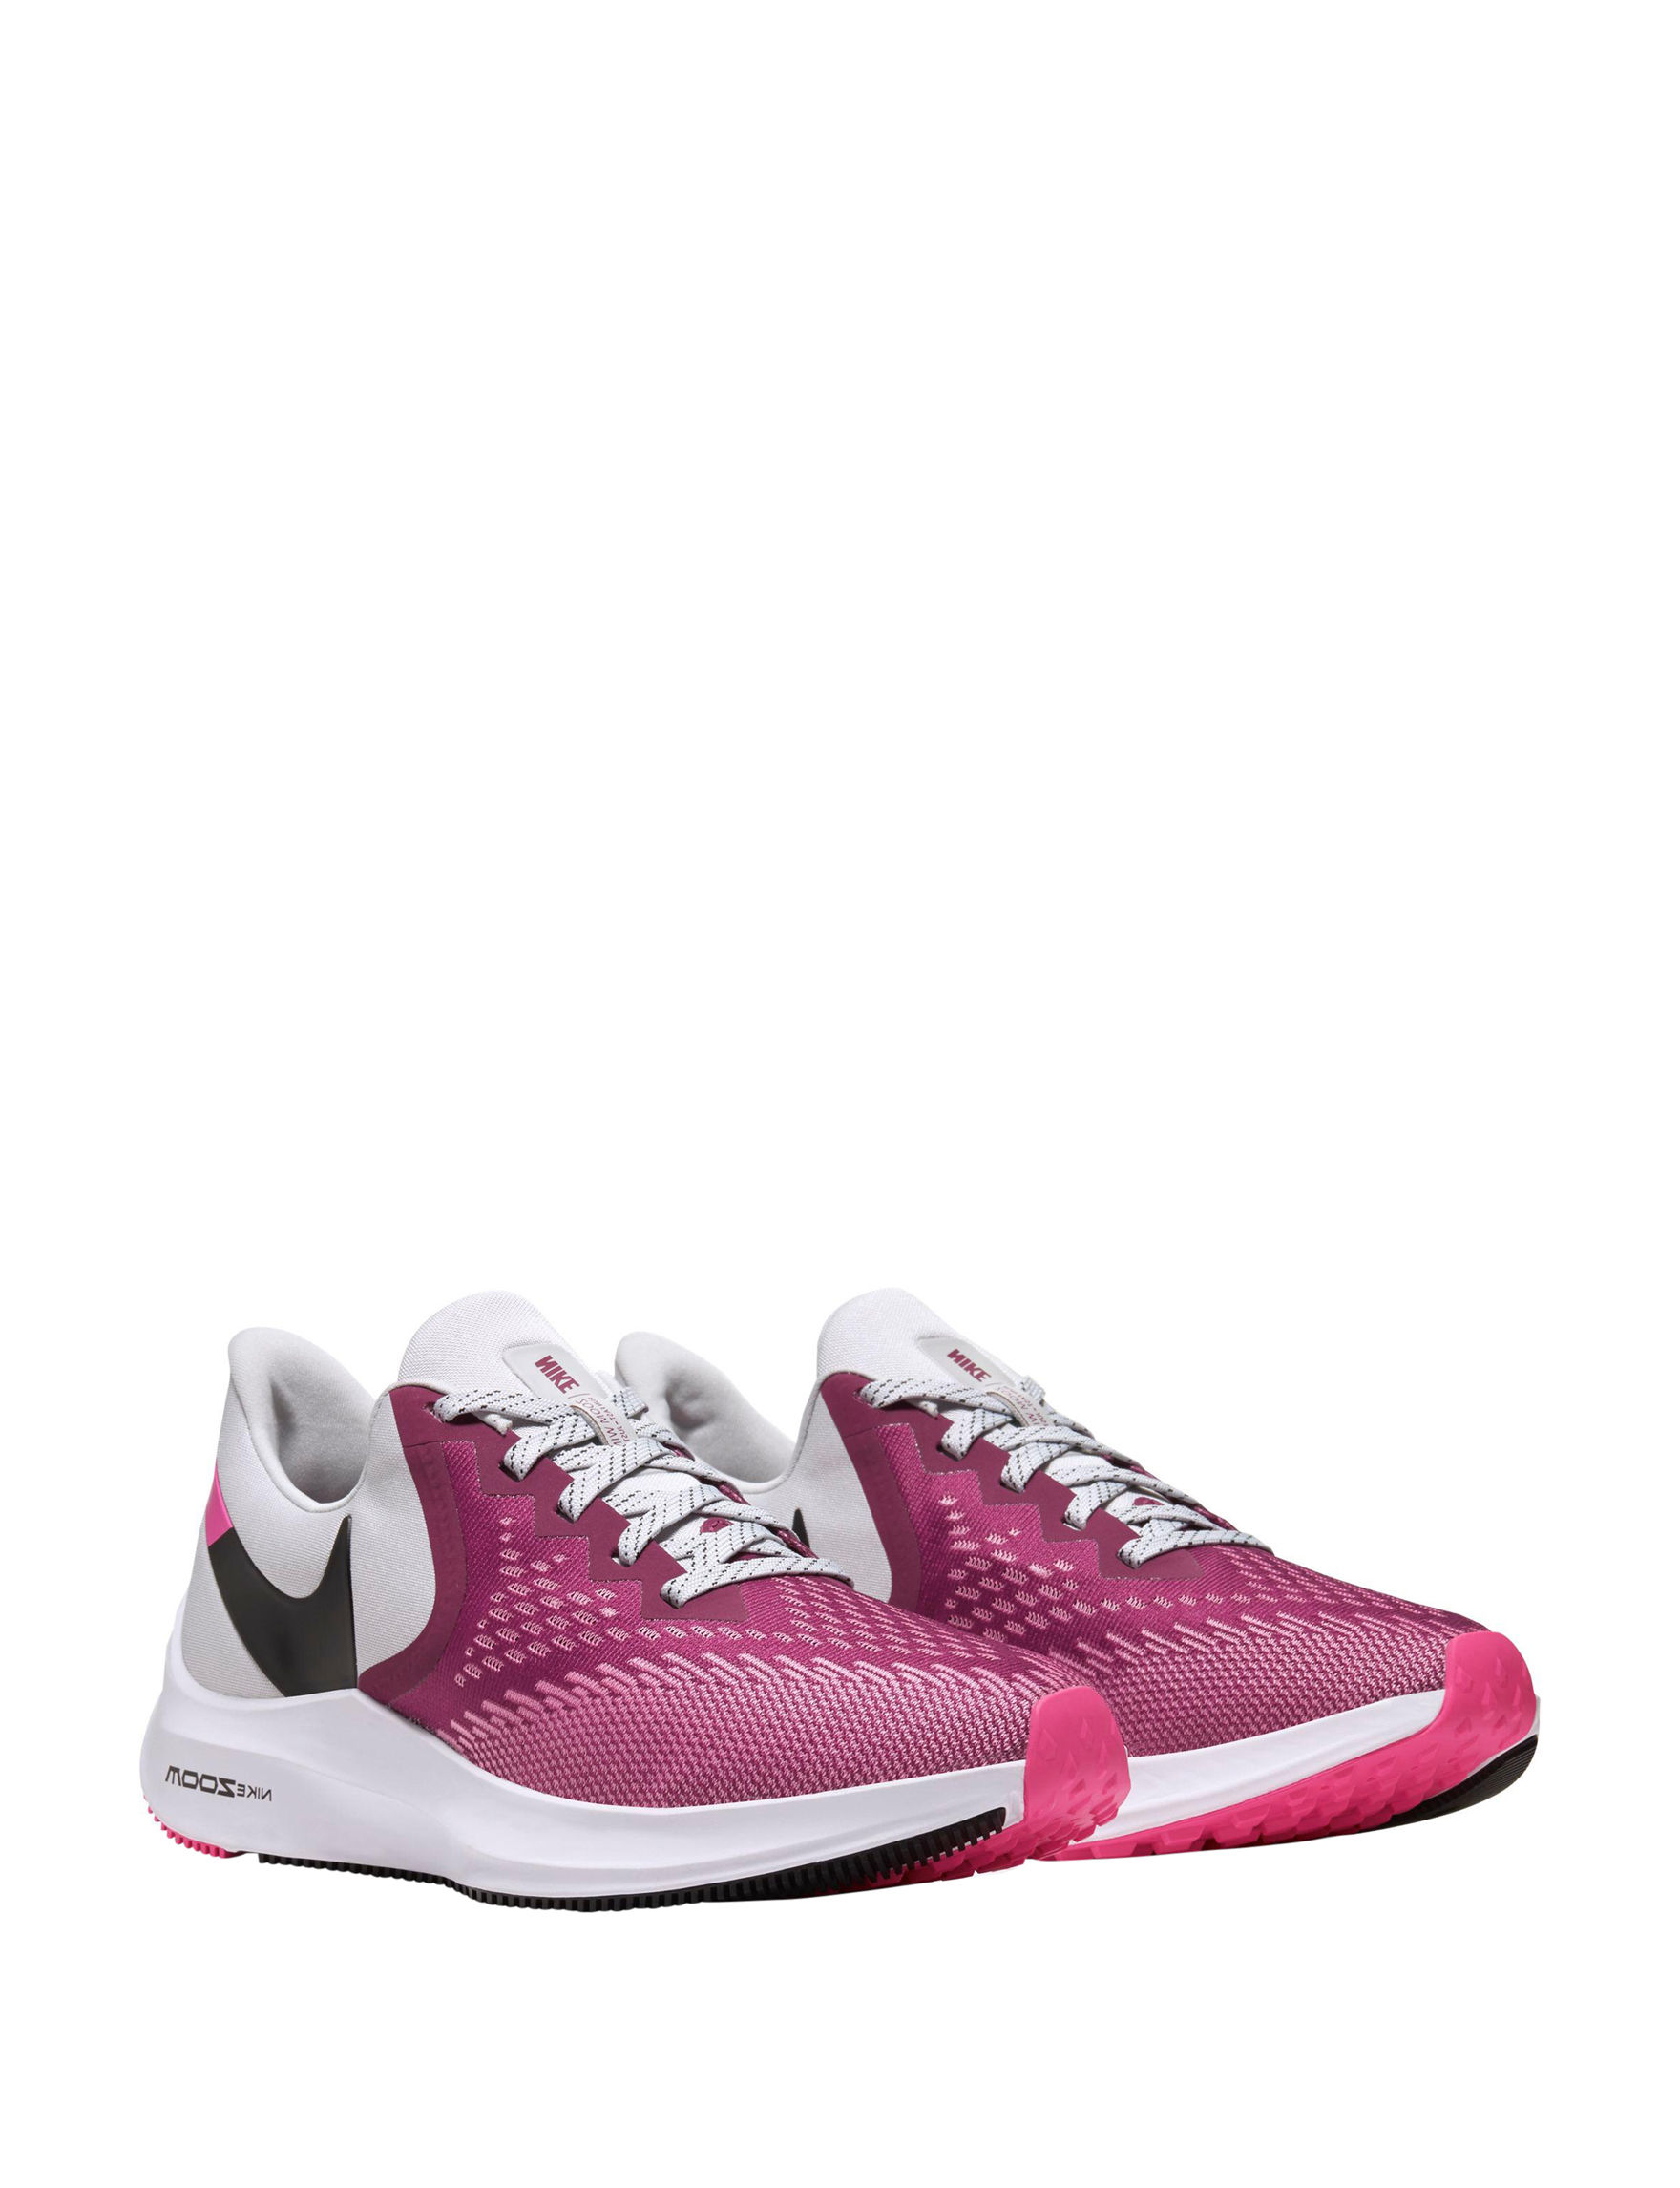 Nike Grey / Pink Comfort Shoes